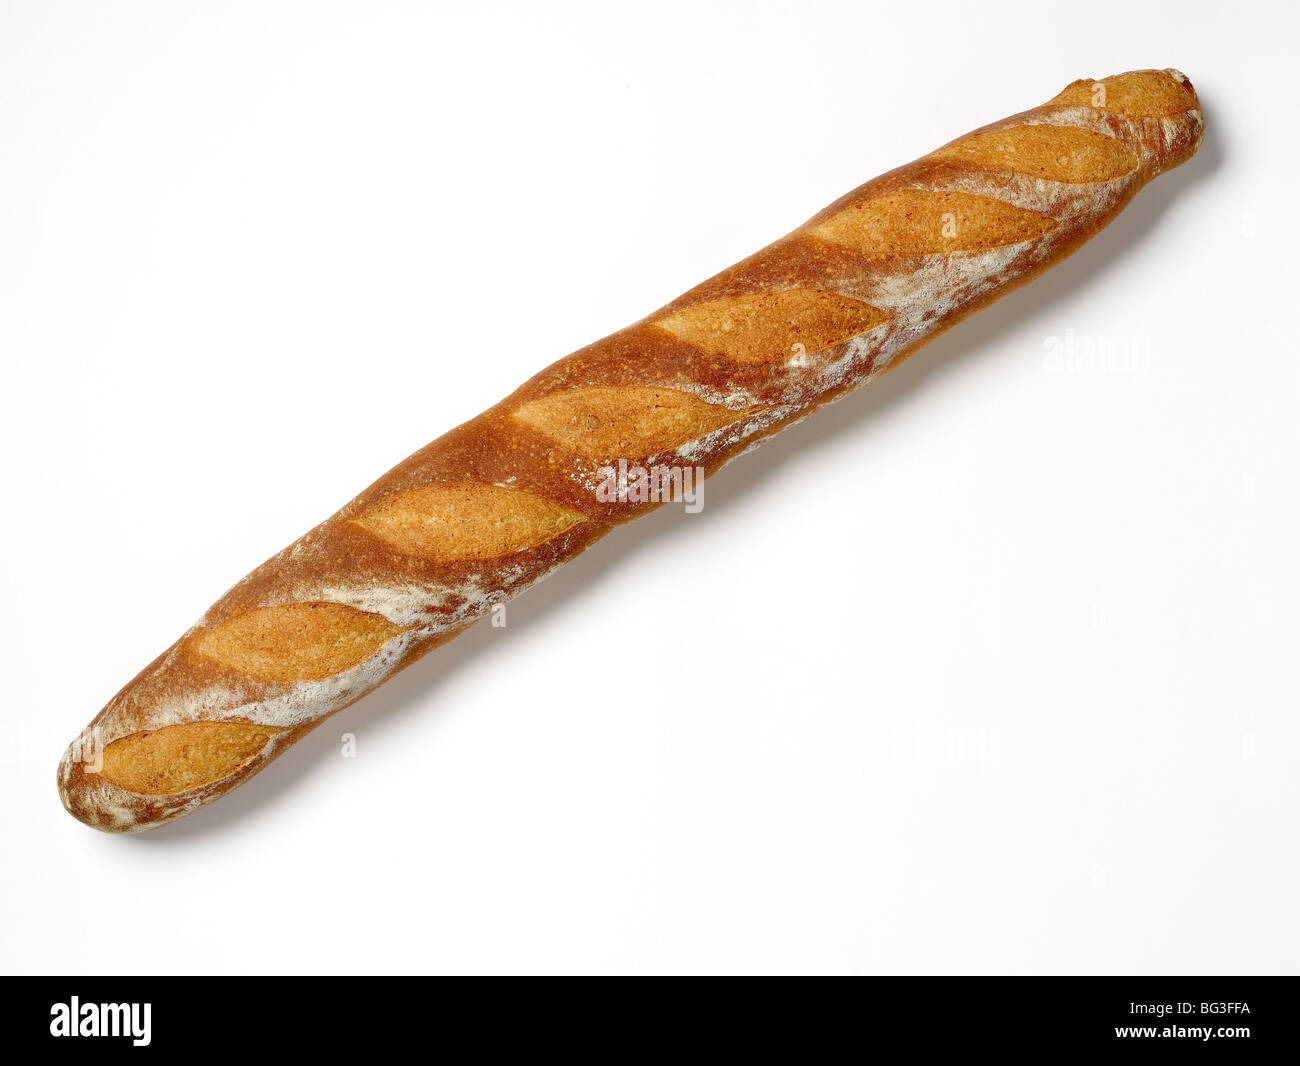 French Baguette - Stock Image